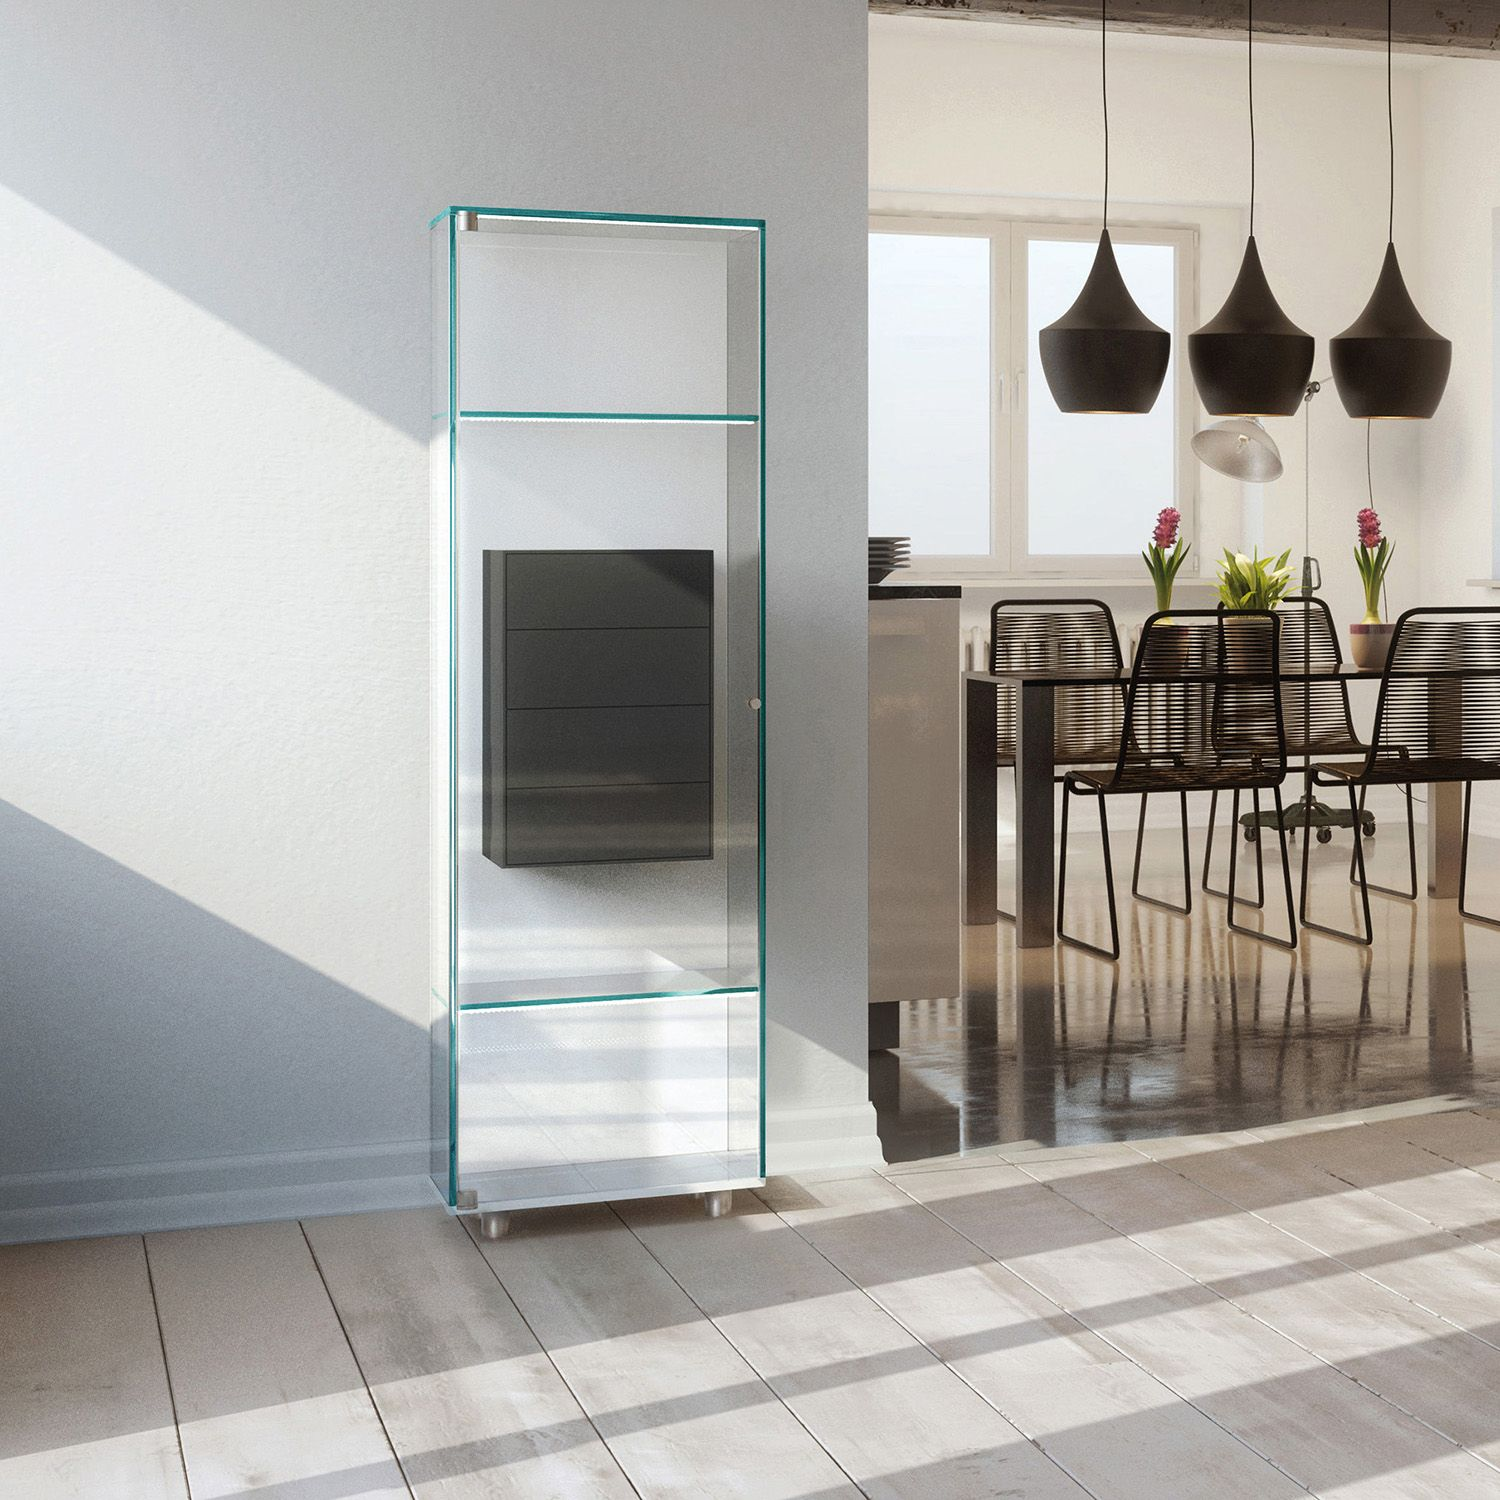 Glasvitrinen Ladenbau Glasvitrine Solus Fly: Ein Weiteres Design-highlight Aus ...